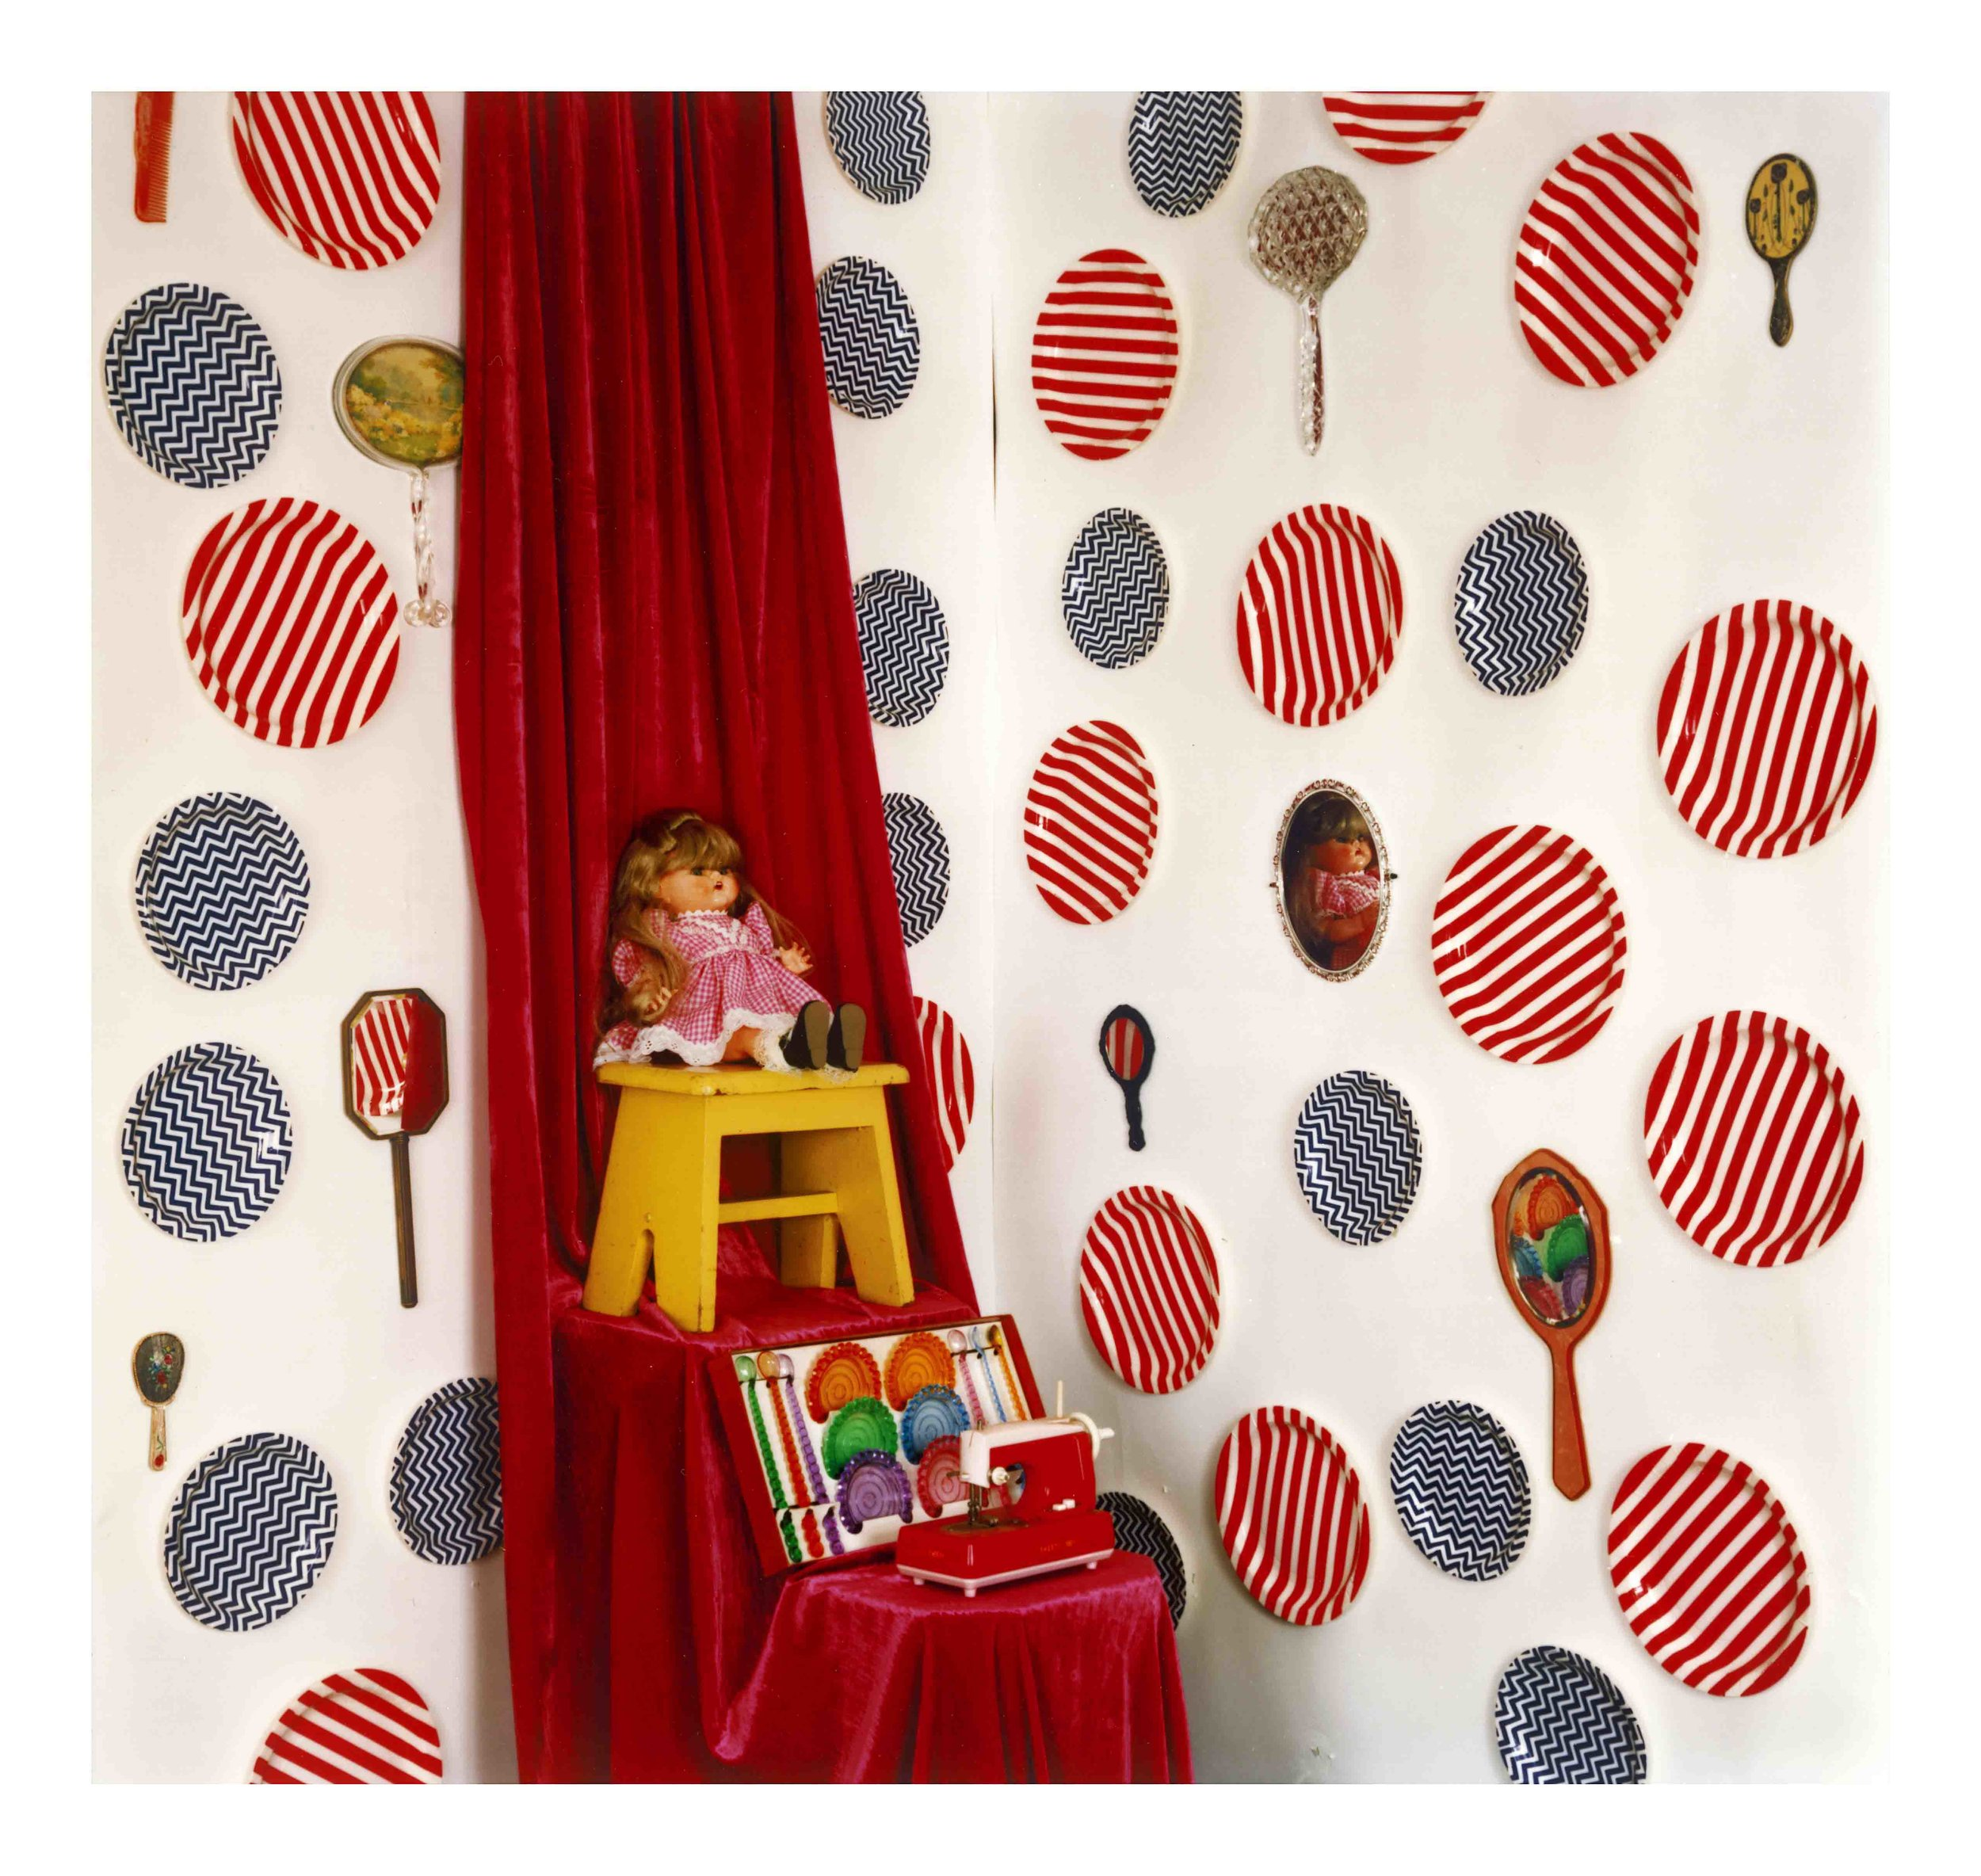 ©Jacky Redgate, Unfold - mirrors, doll, coaster and spoon set, child's sewing machine, 2016 .jpg